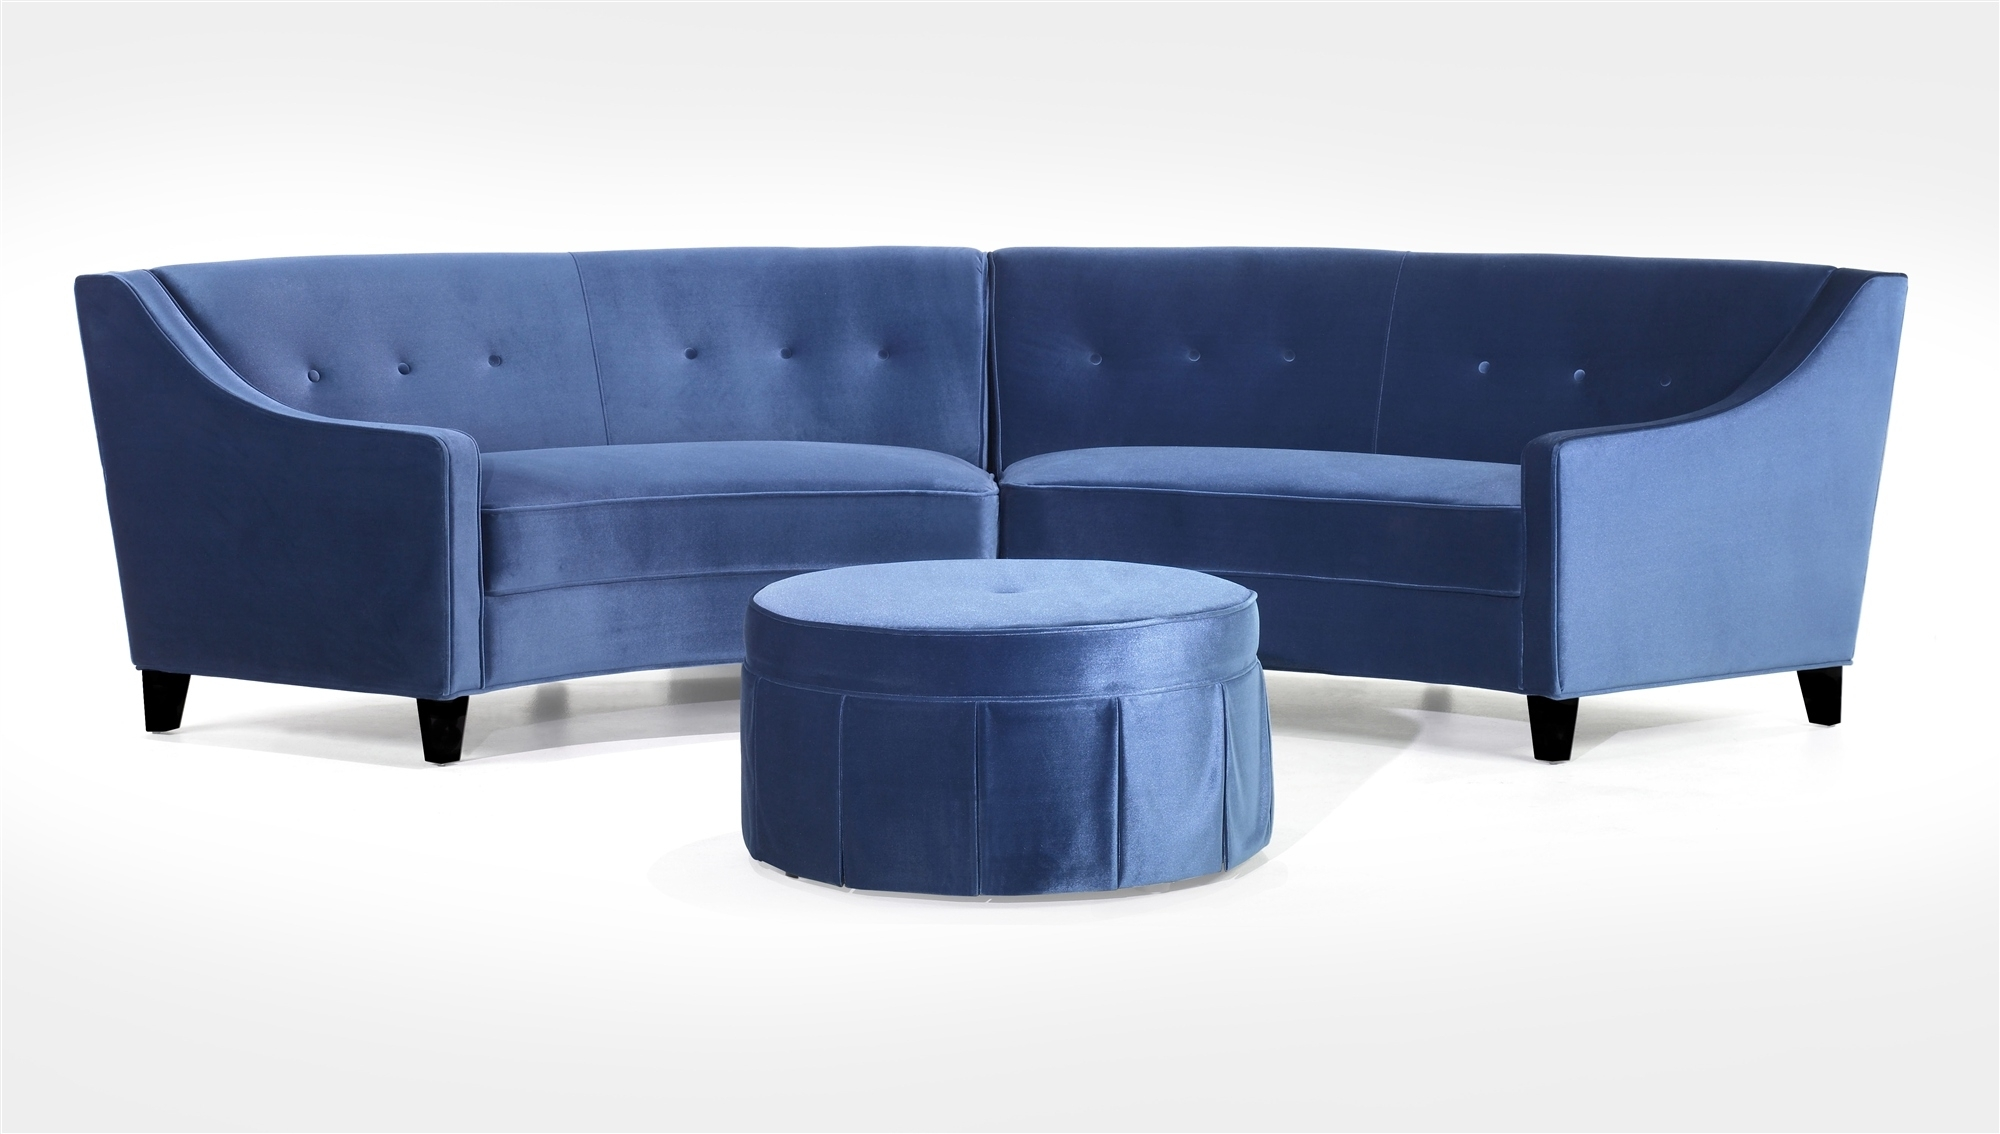 Popular Small Round Sectional Sofa 49 In Sleek Sectional Sofas With For Sleek Sectional Sofas (Image 9 of 10)